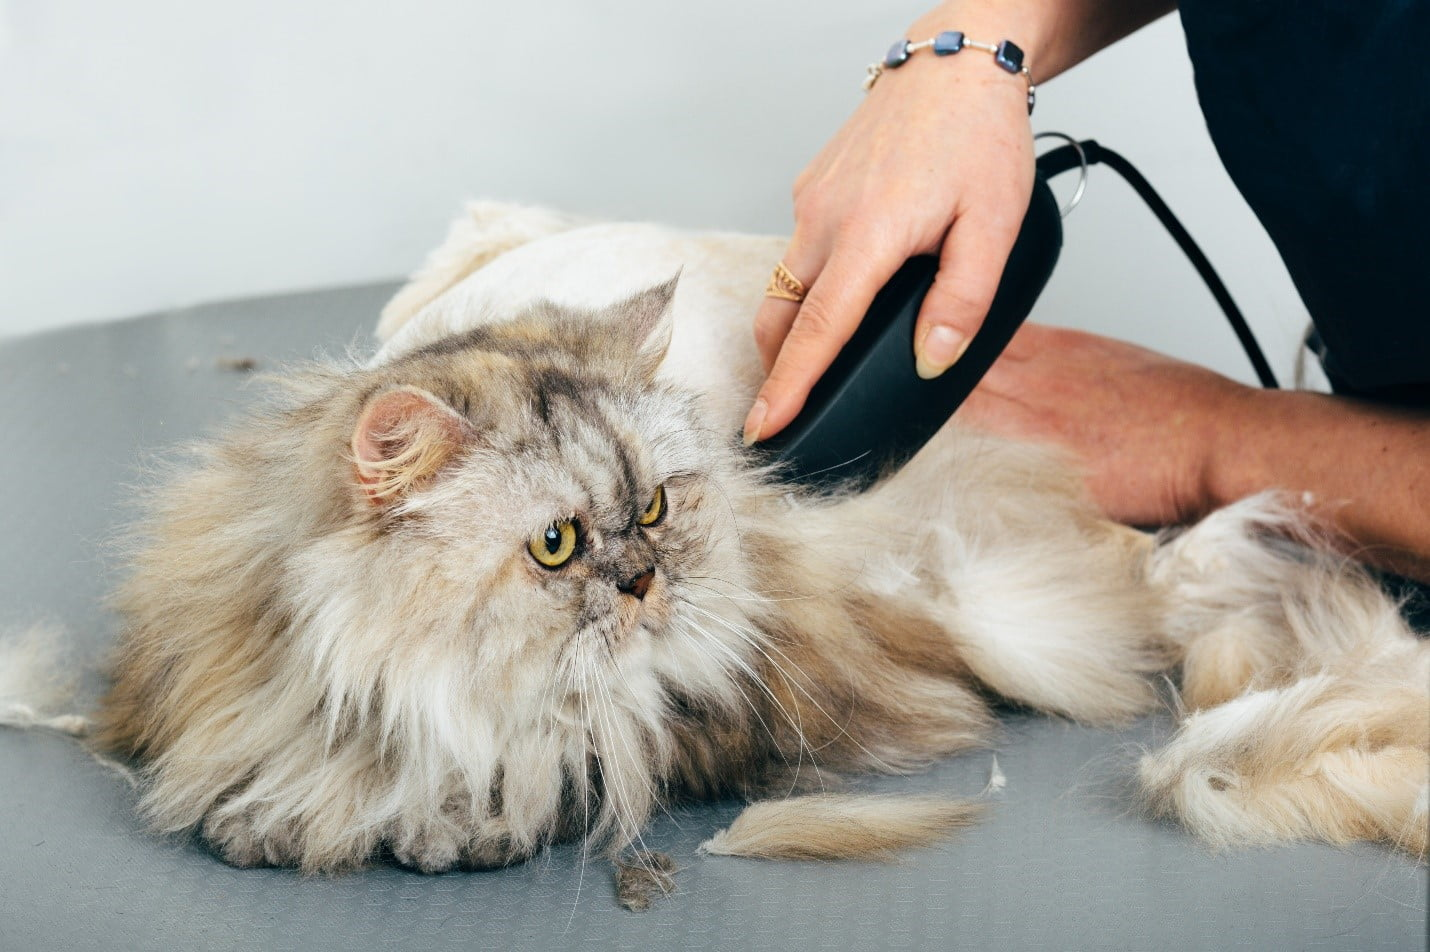 long-haired cat being groomed with clippers